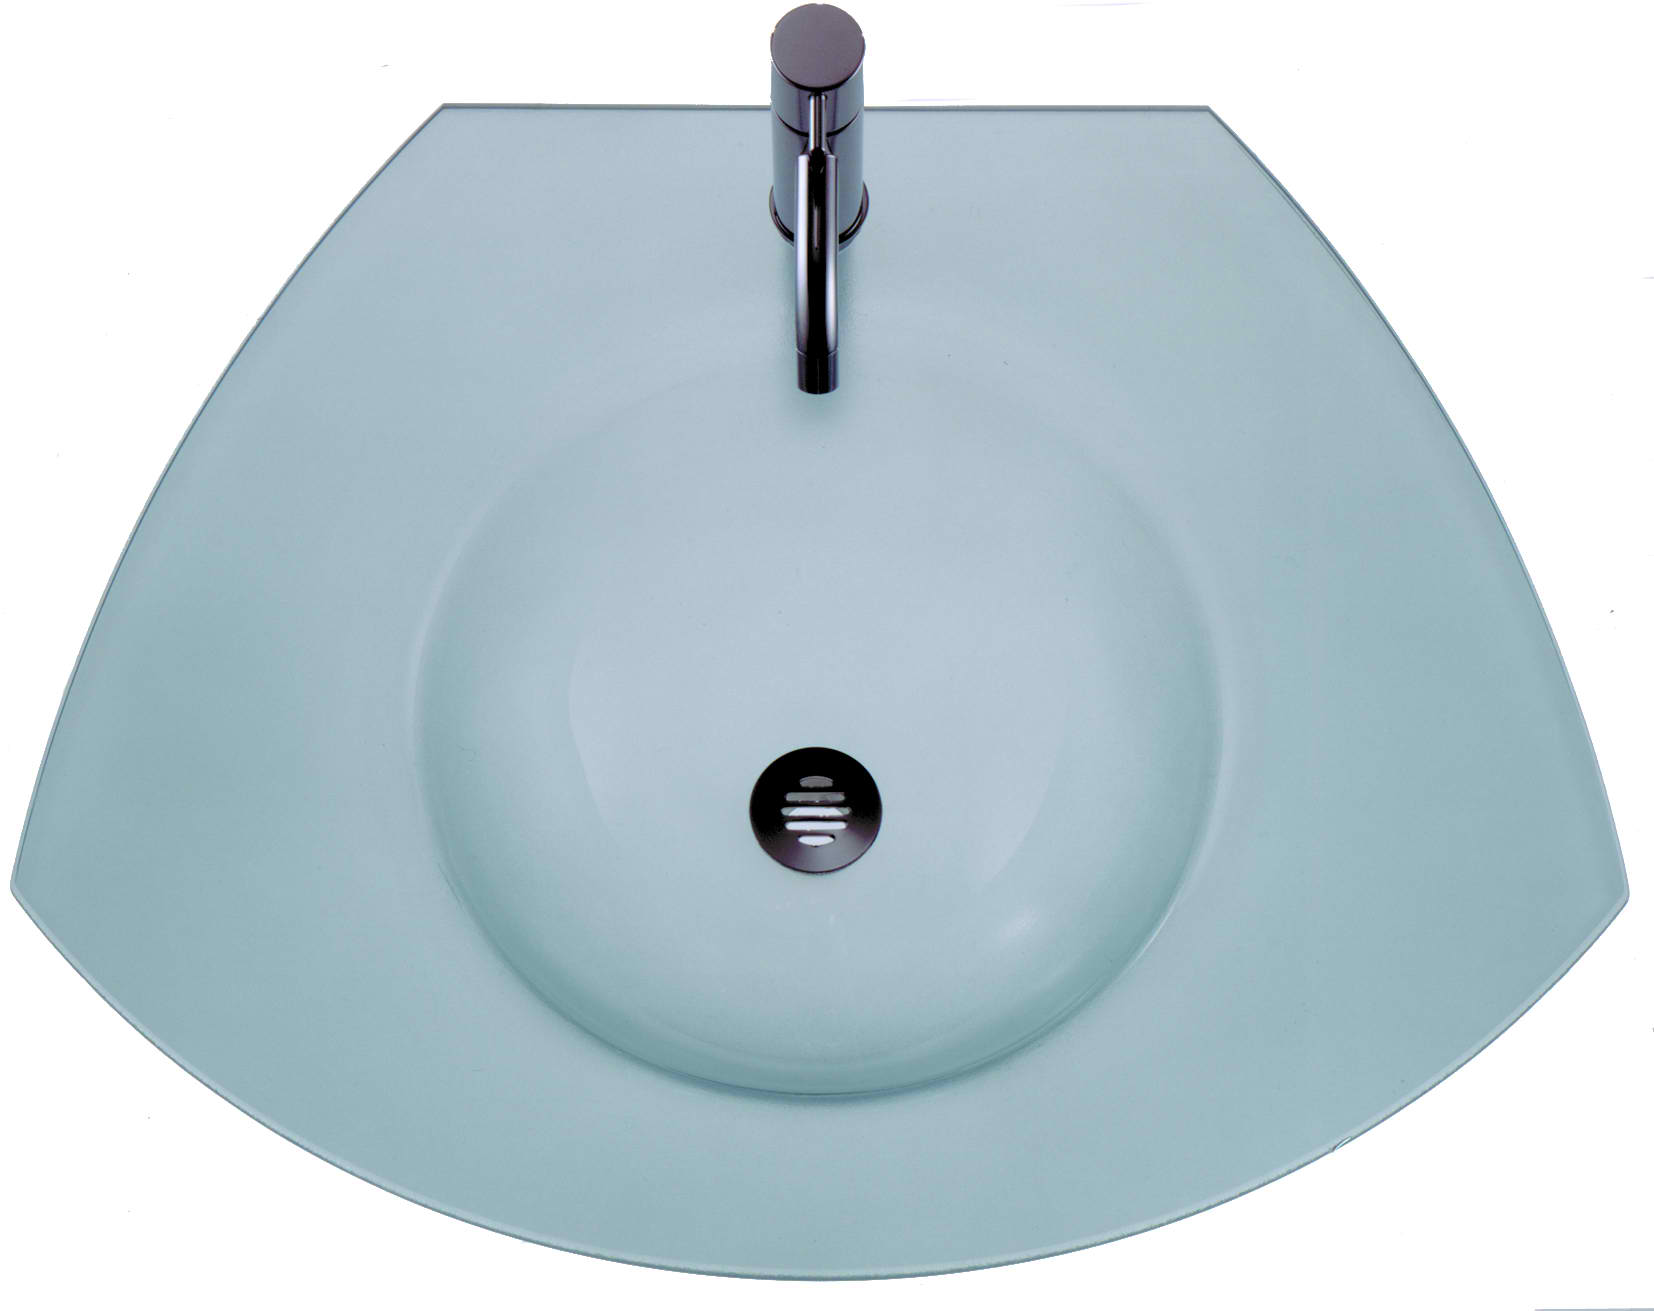 New Generation Ecoloom Trapezoidal Glass Counter Top with Integrated Round Basin